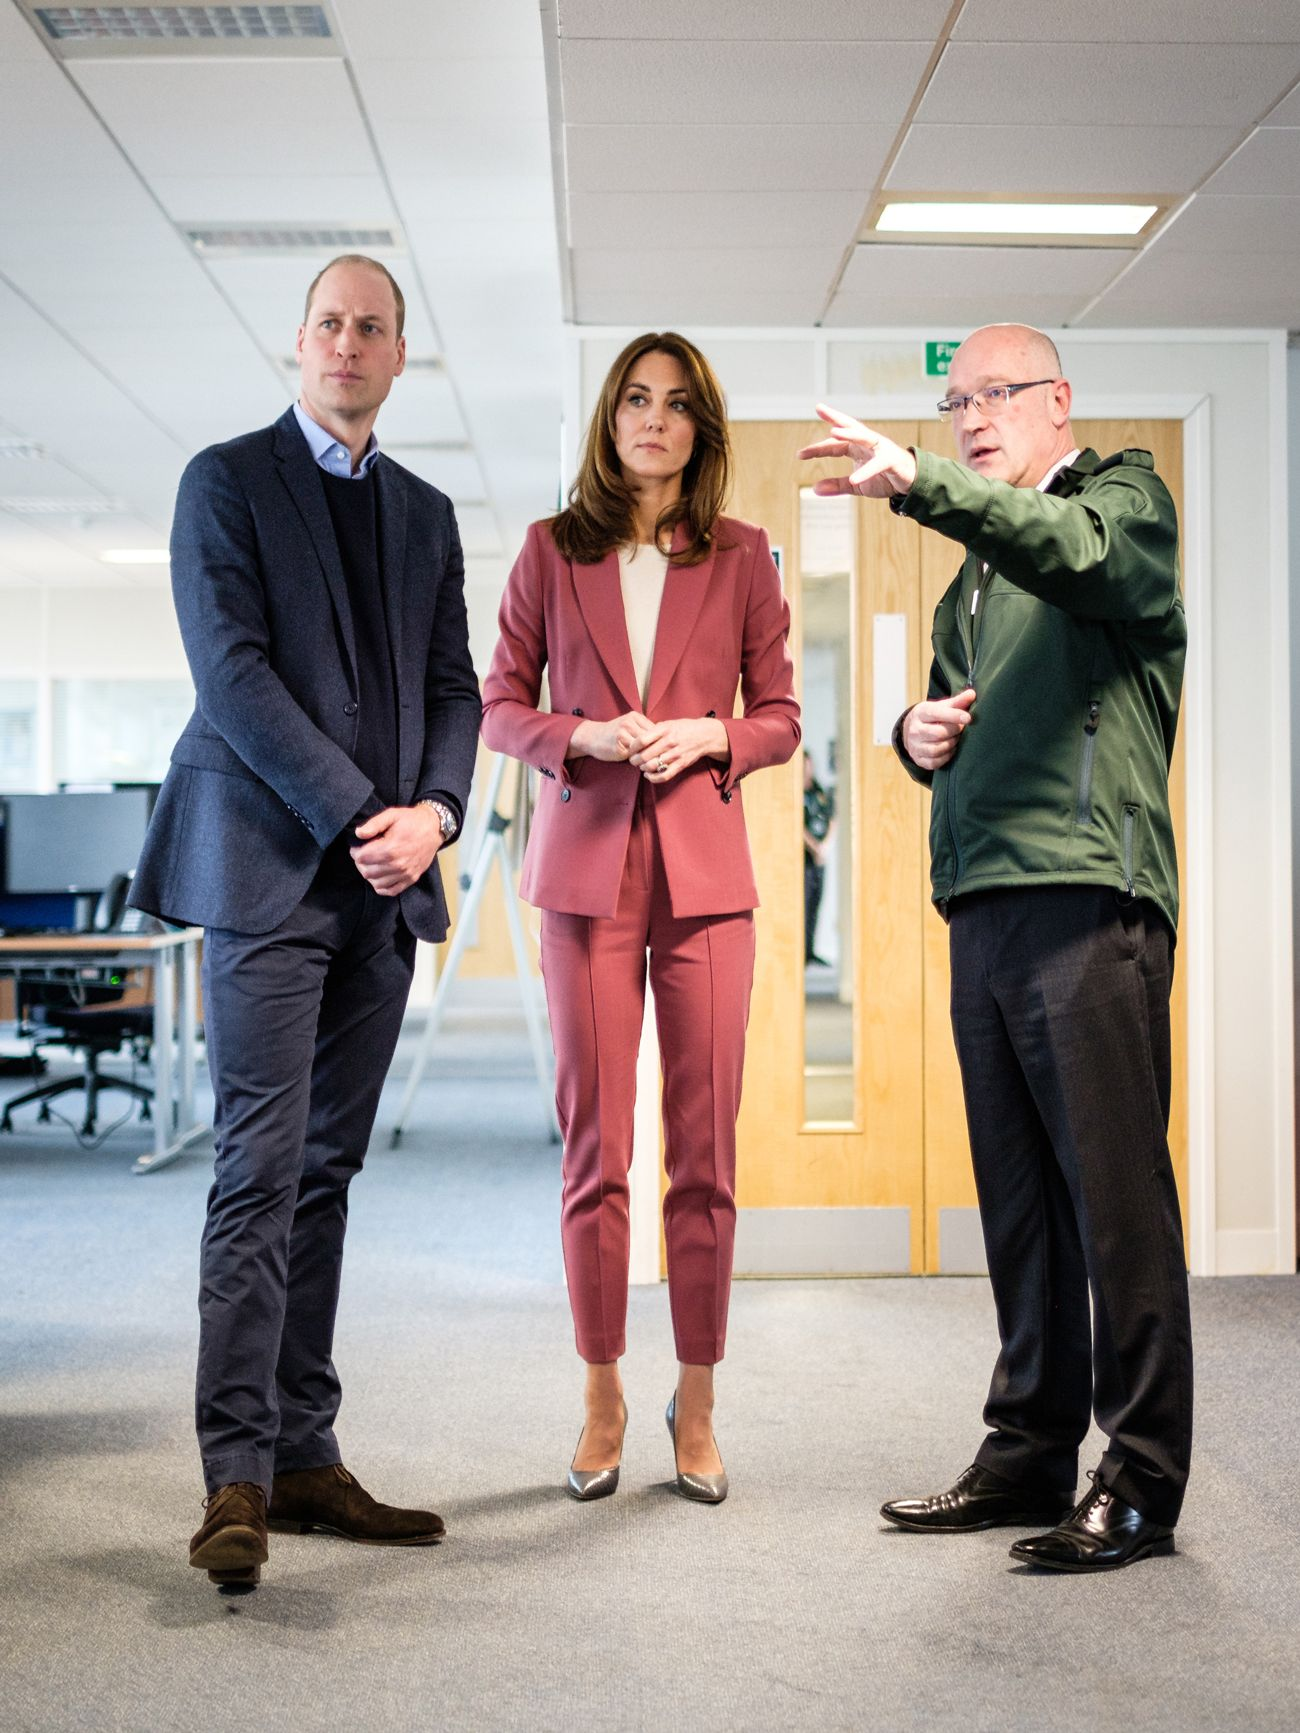 Kate Middleton Just Visited an Ambulance Call Center to Thank Employees